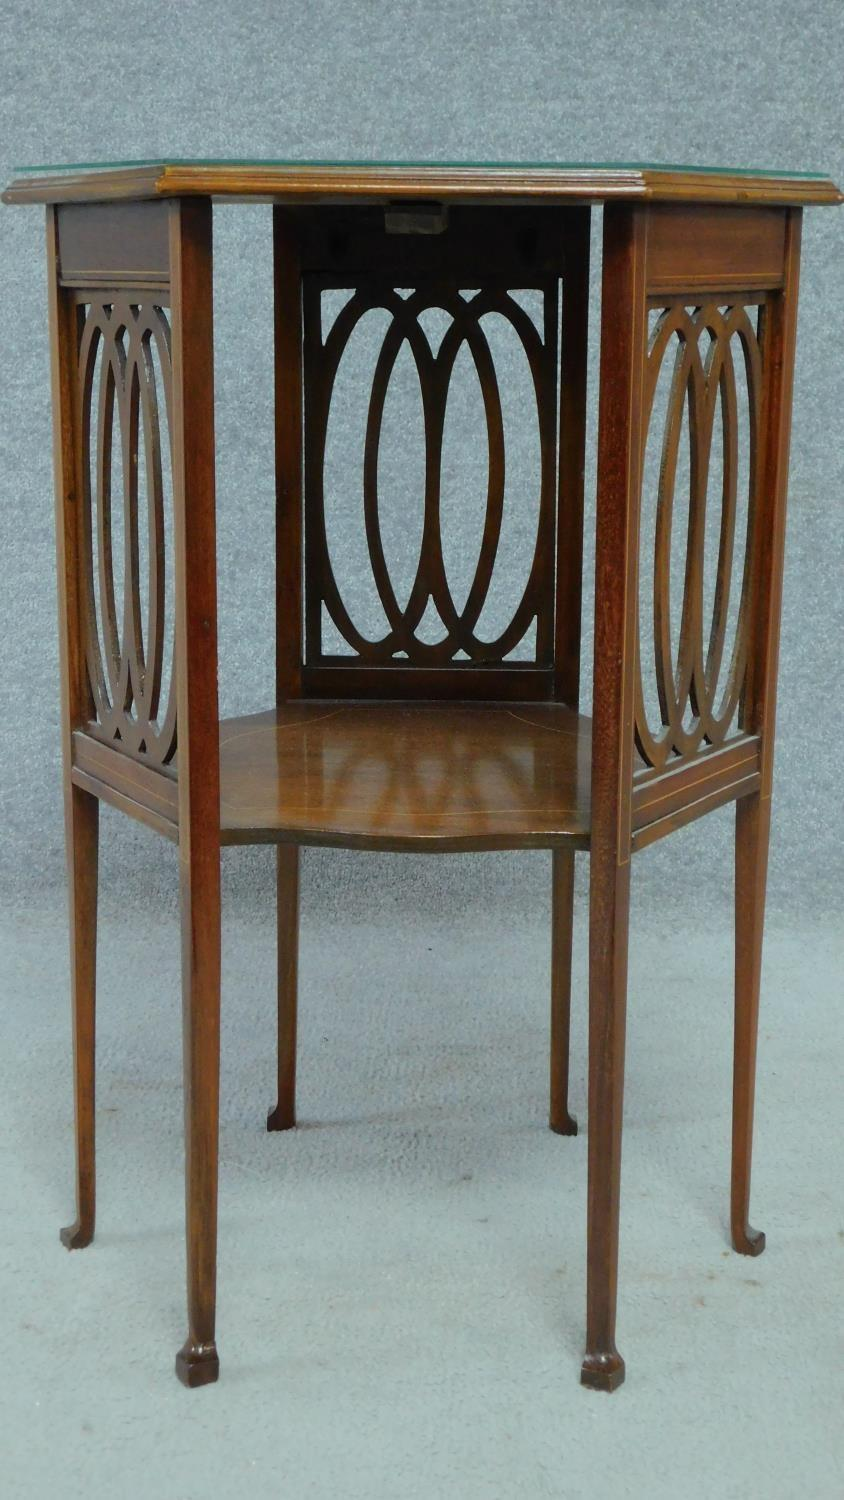 An Arts & Crafts mahogany and satinwood inlaid hexagonal carved lamp table raised on square tapering